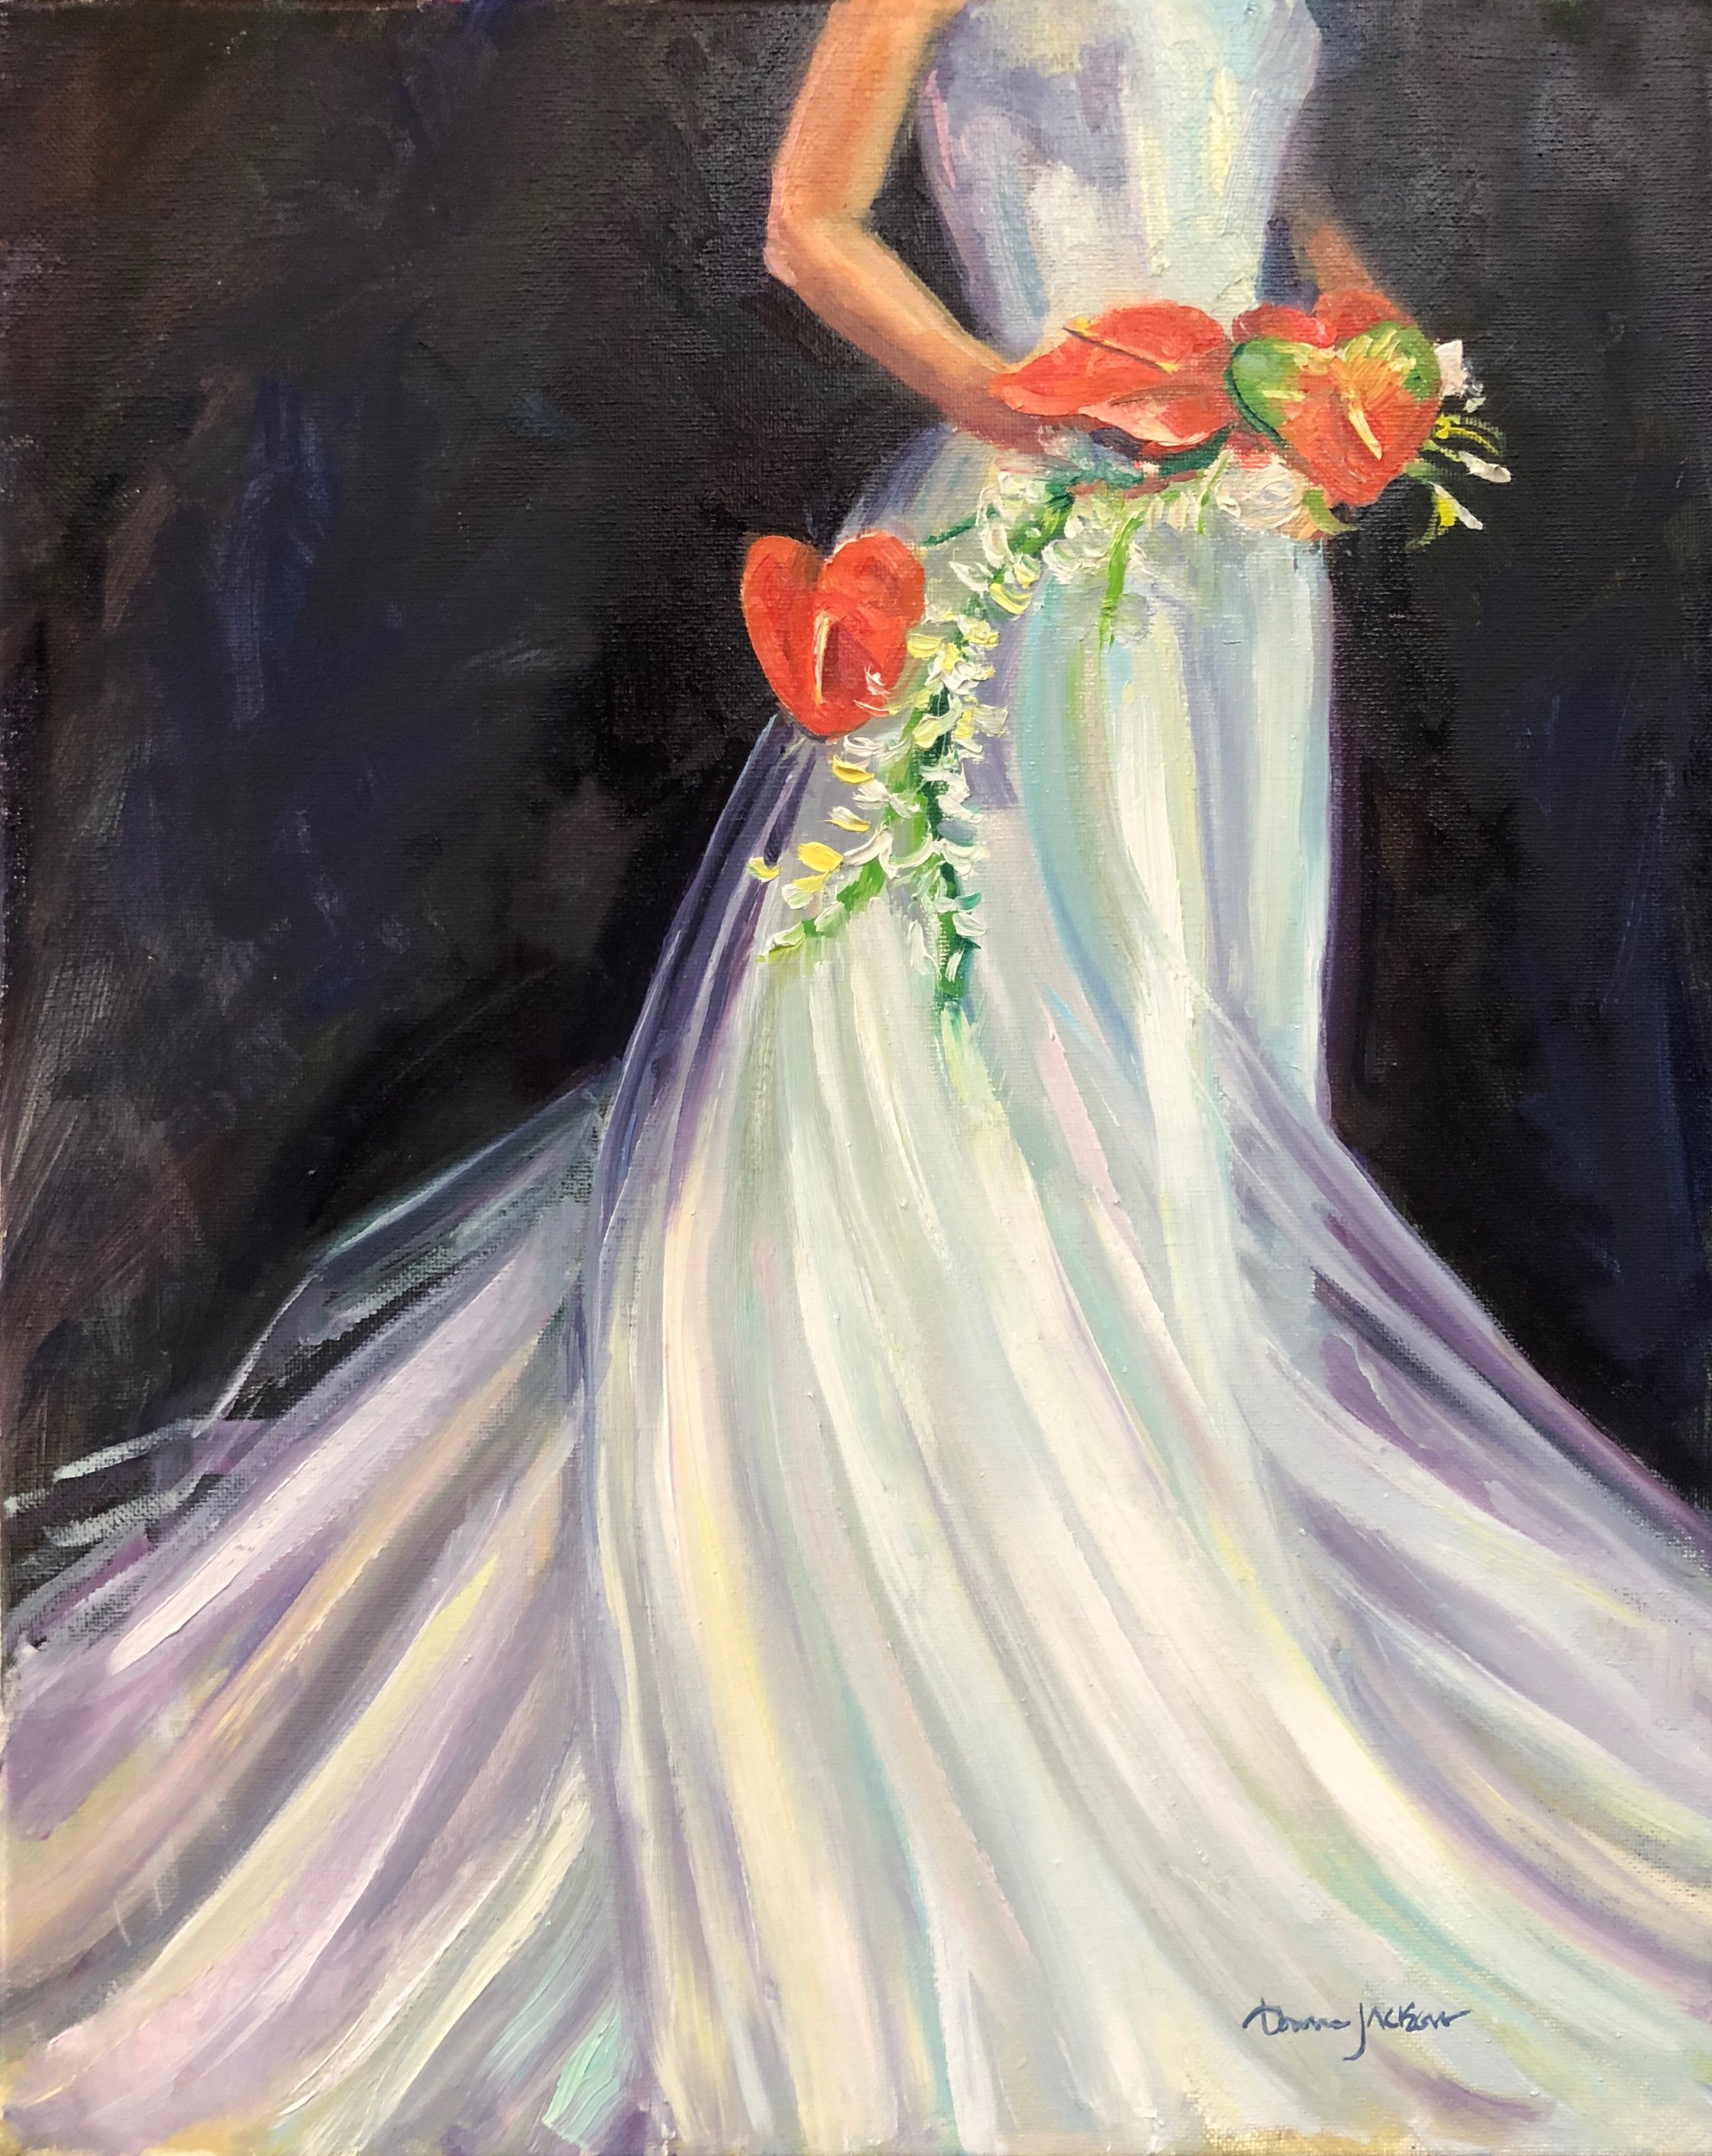 """""""For our twelfth Anniversary we wanted to celebrate with a painting with a modern twist. i love the way Donna painted my dress and Anthurium bouquet! It captures the joyous memories of a day that flew by so fast. When I saw the finished product I was in AWE!! Truly blown away!  Donna took this beautiful moment and preserved it for us forever!  We love it!""""  Rachel and Alan Tuttle"""